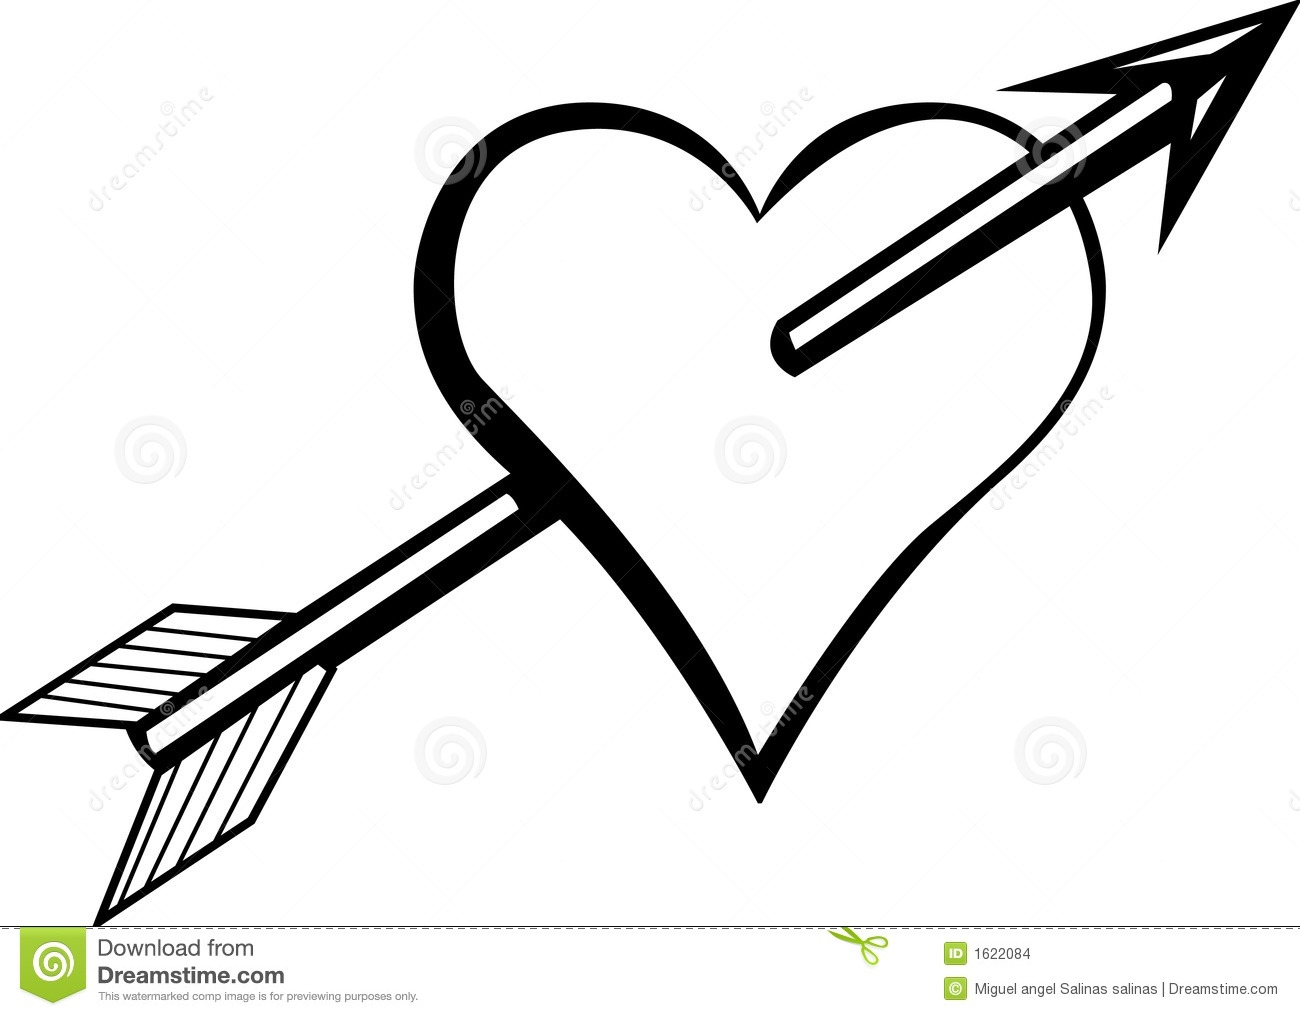 arrow heart clipart black and white for silhouette. Black Bedroom Furniture Sets. Home Design Ideas